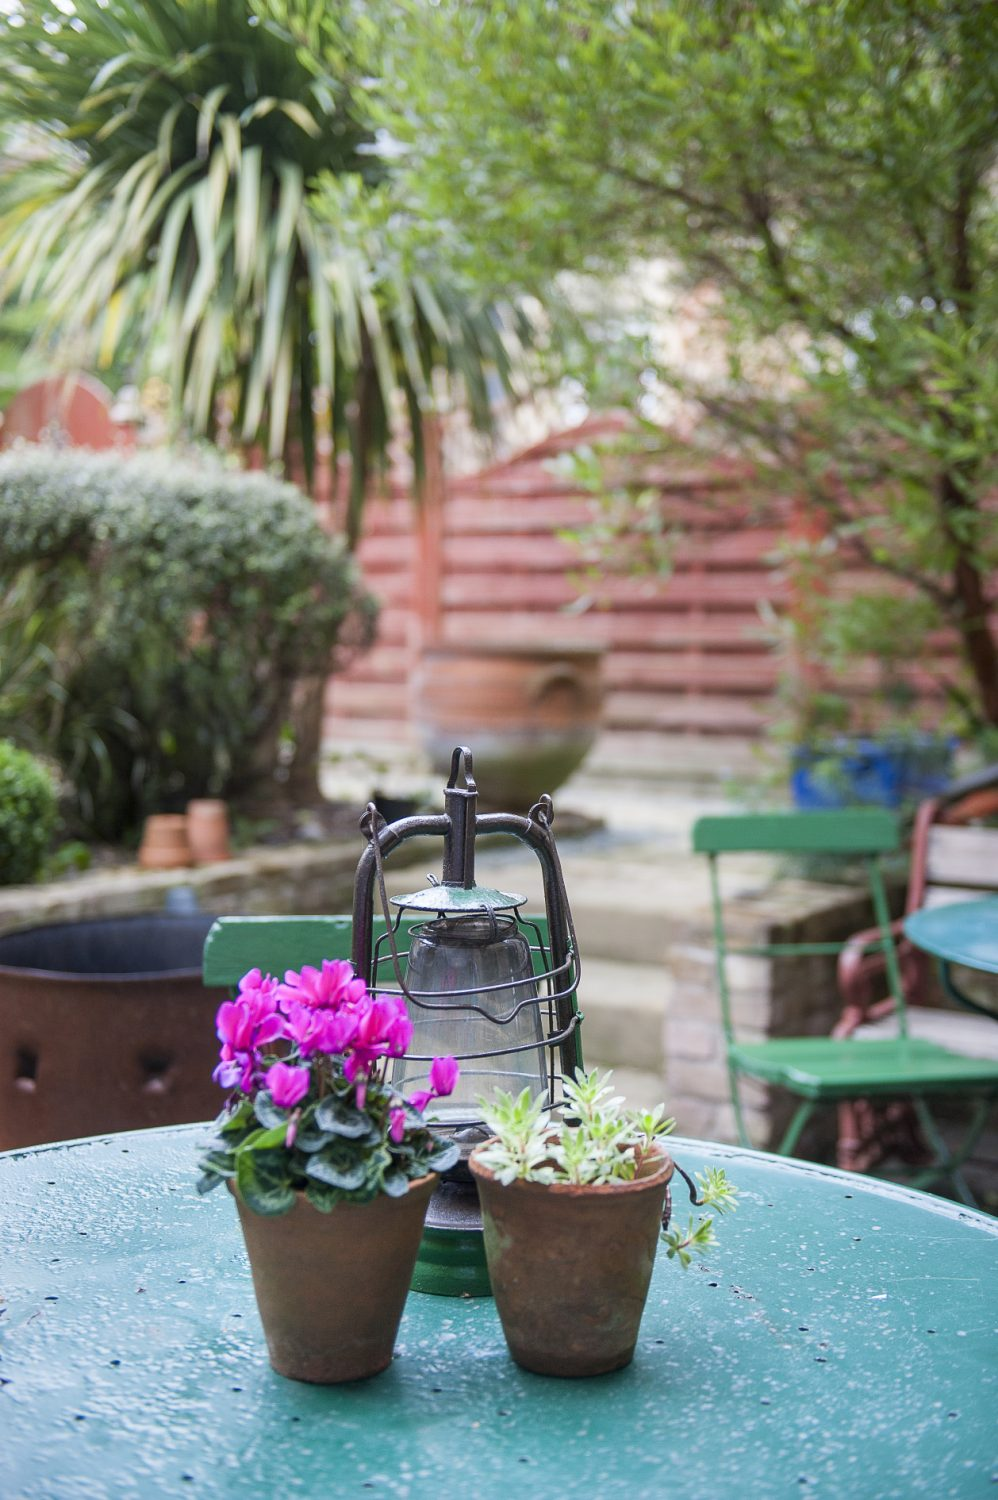 The courtyard garden at the back of the building is filled with potted plants, and is as appealing in winter as it is in summer.